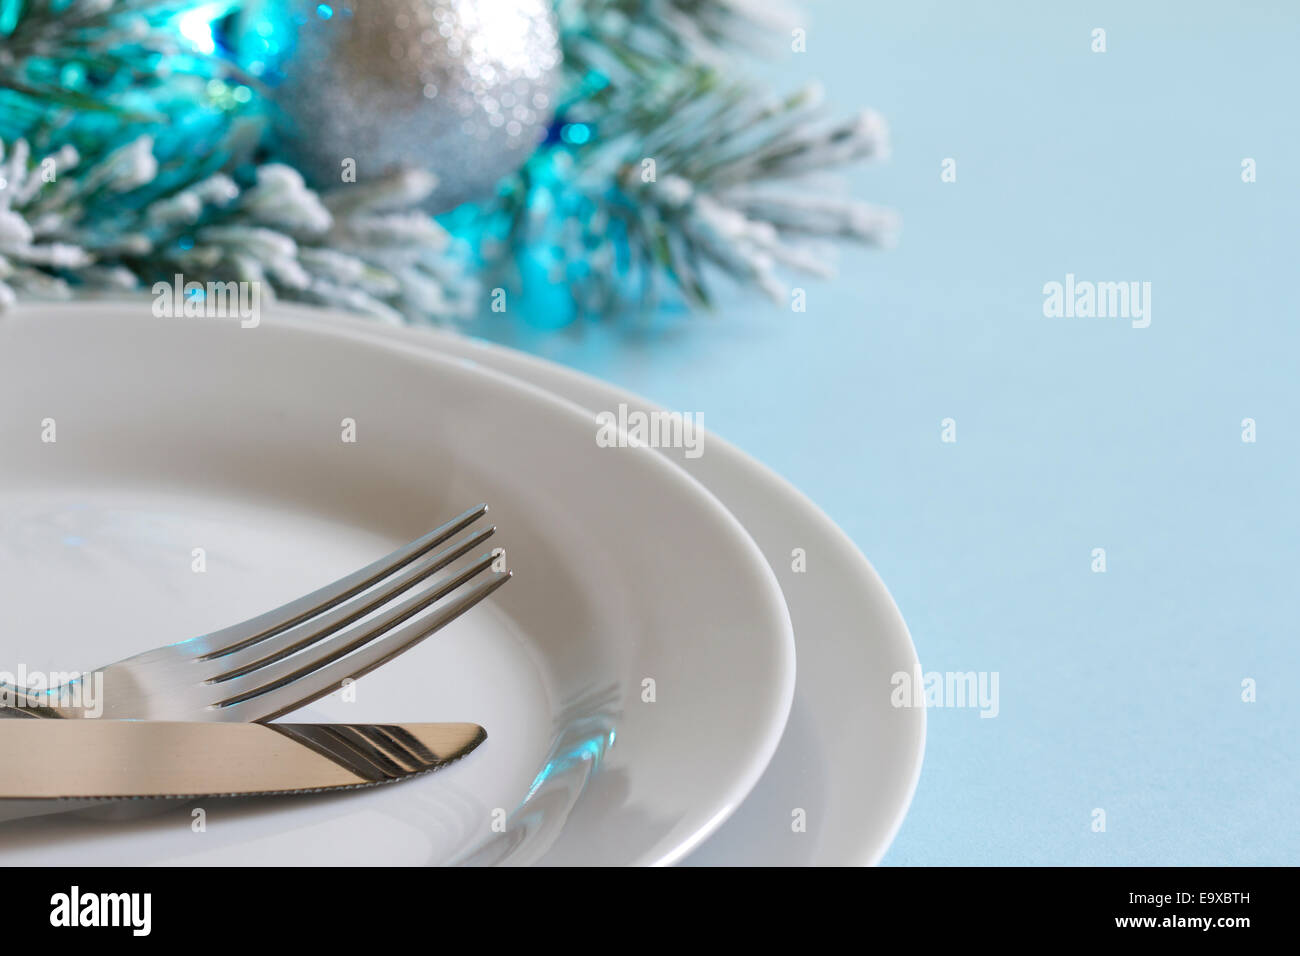 Christmas table with cutlery and tableware abstract background - Stock Image